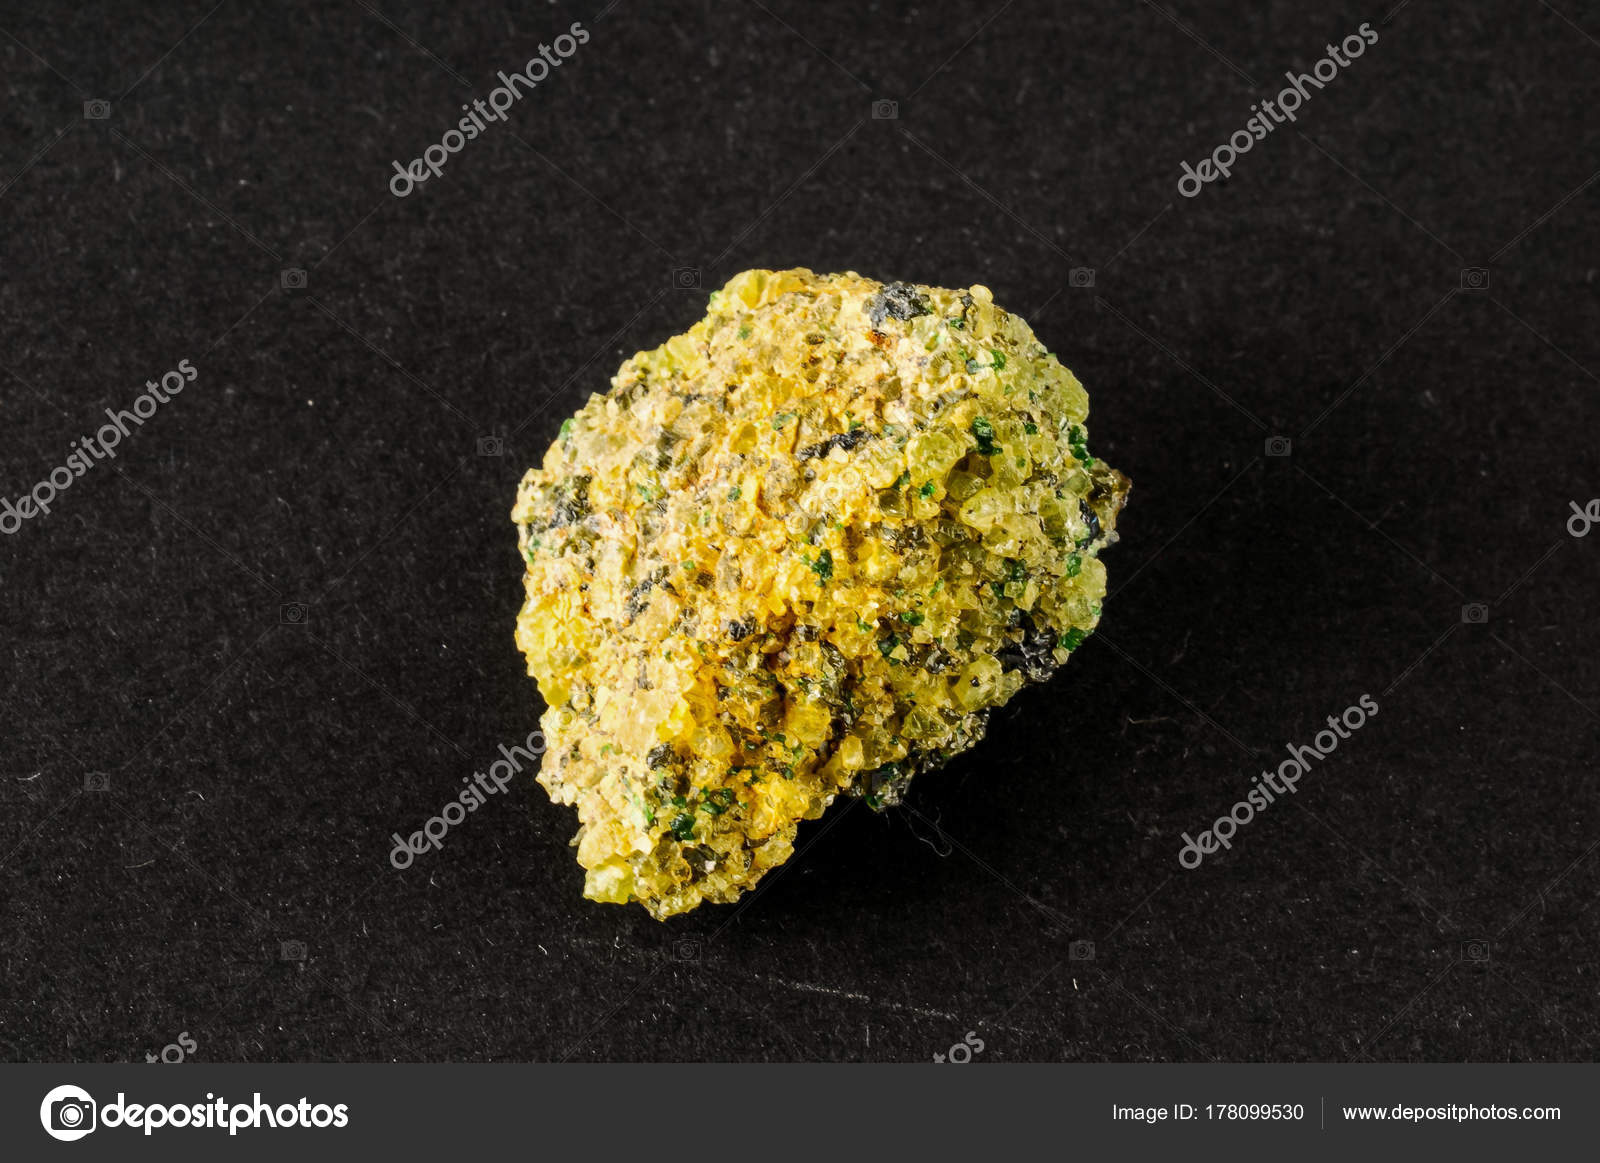 mining gemstone rock shop tenorex office geoservices untitled products olivine